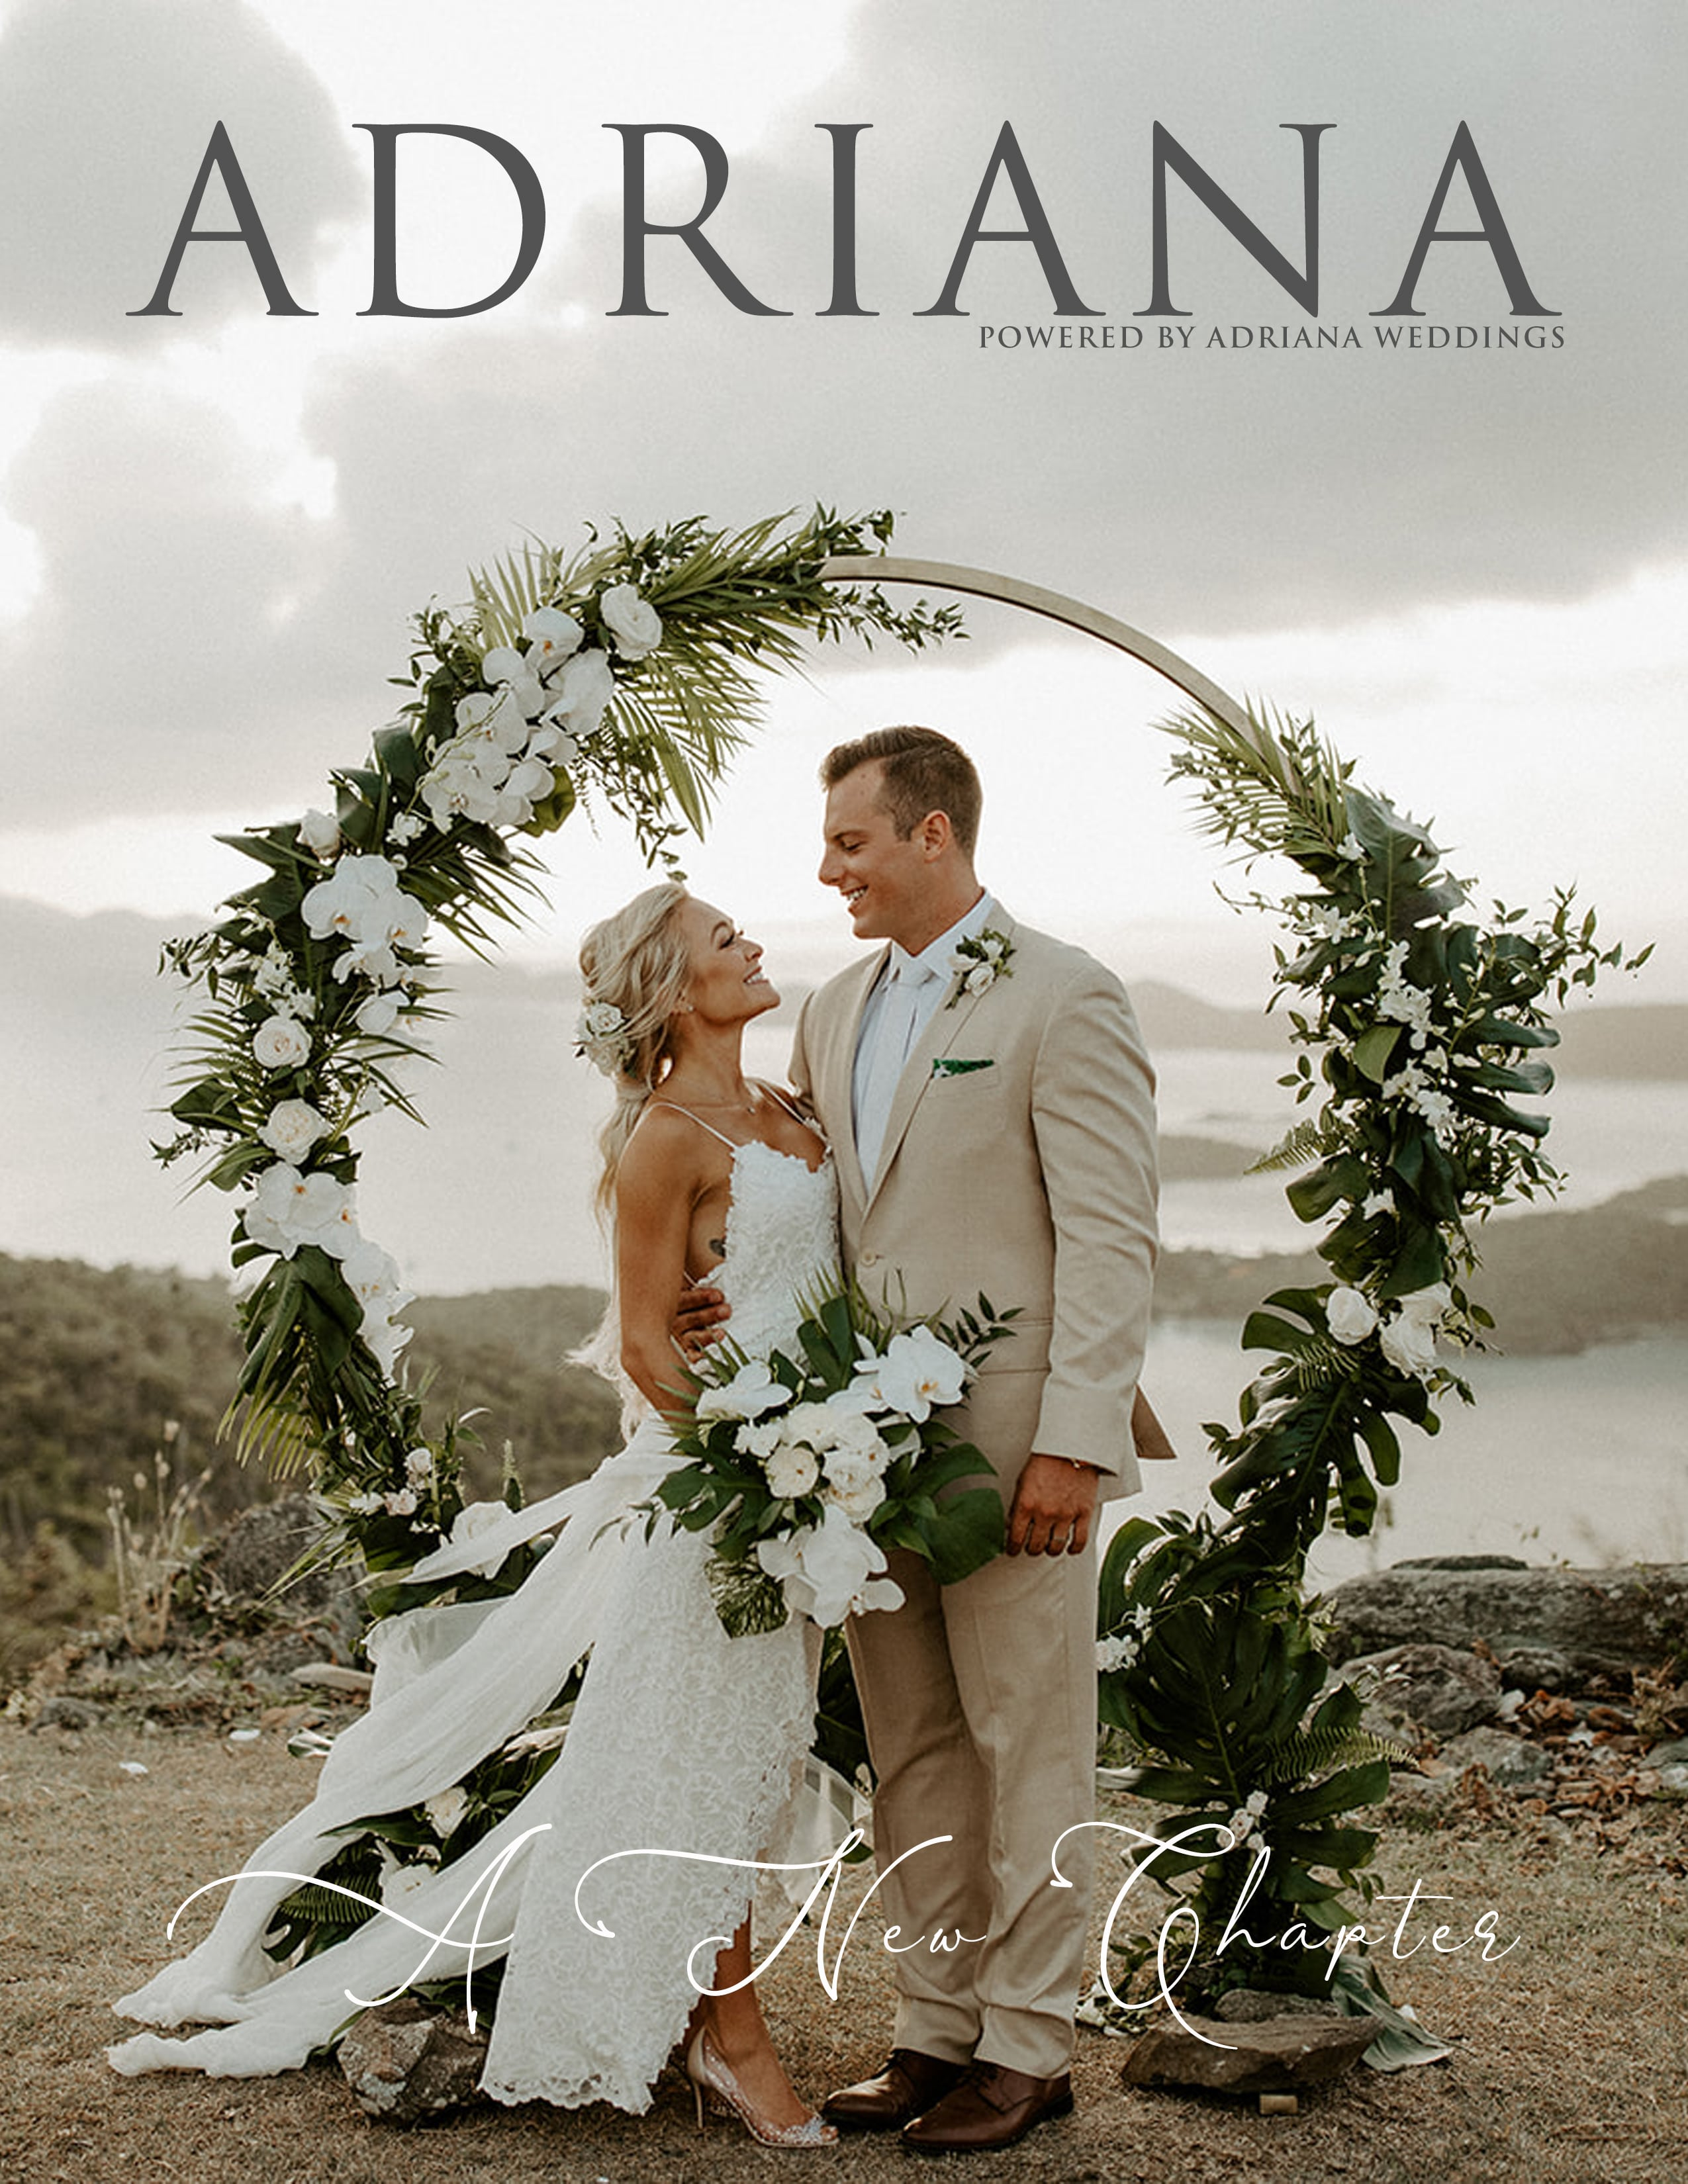 ADRIANA Magazine (Issue IV) - A New Chapter, for luxury destination wedding blog Adriana Weddings, Cover Photo by Lindsay Vann Photography